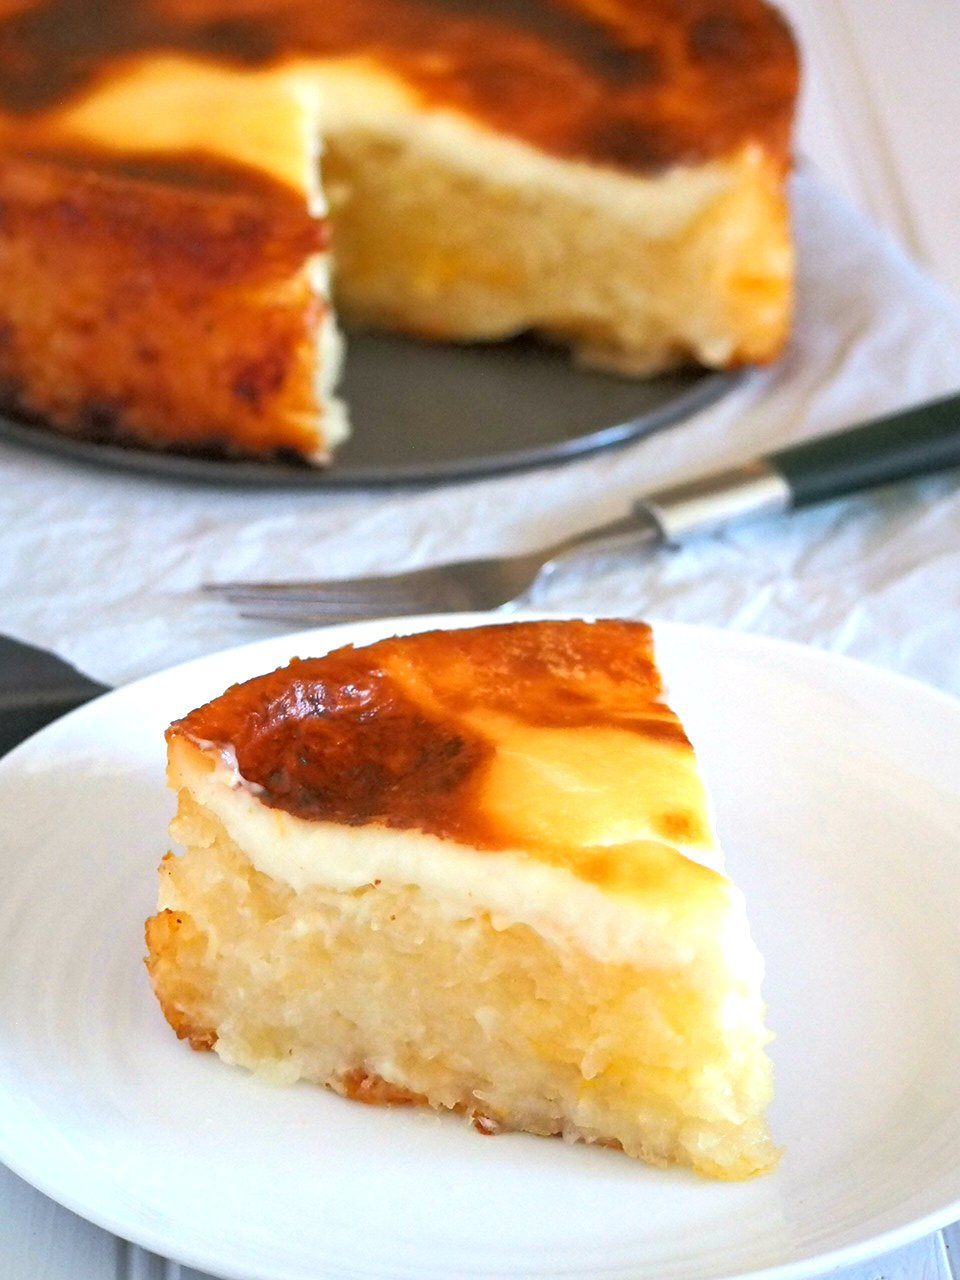 A slice of cassava cake in a plate.